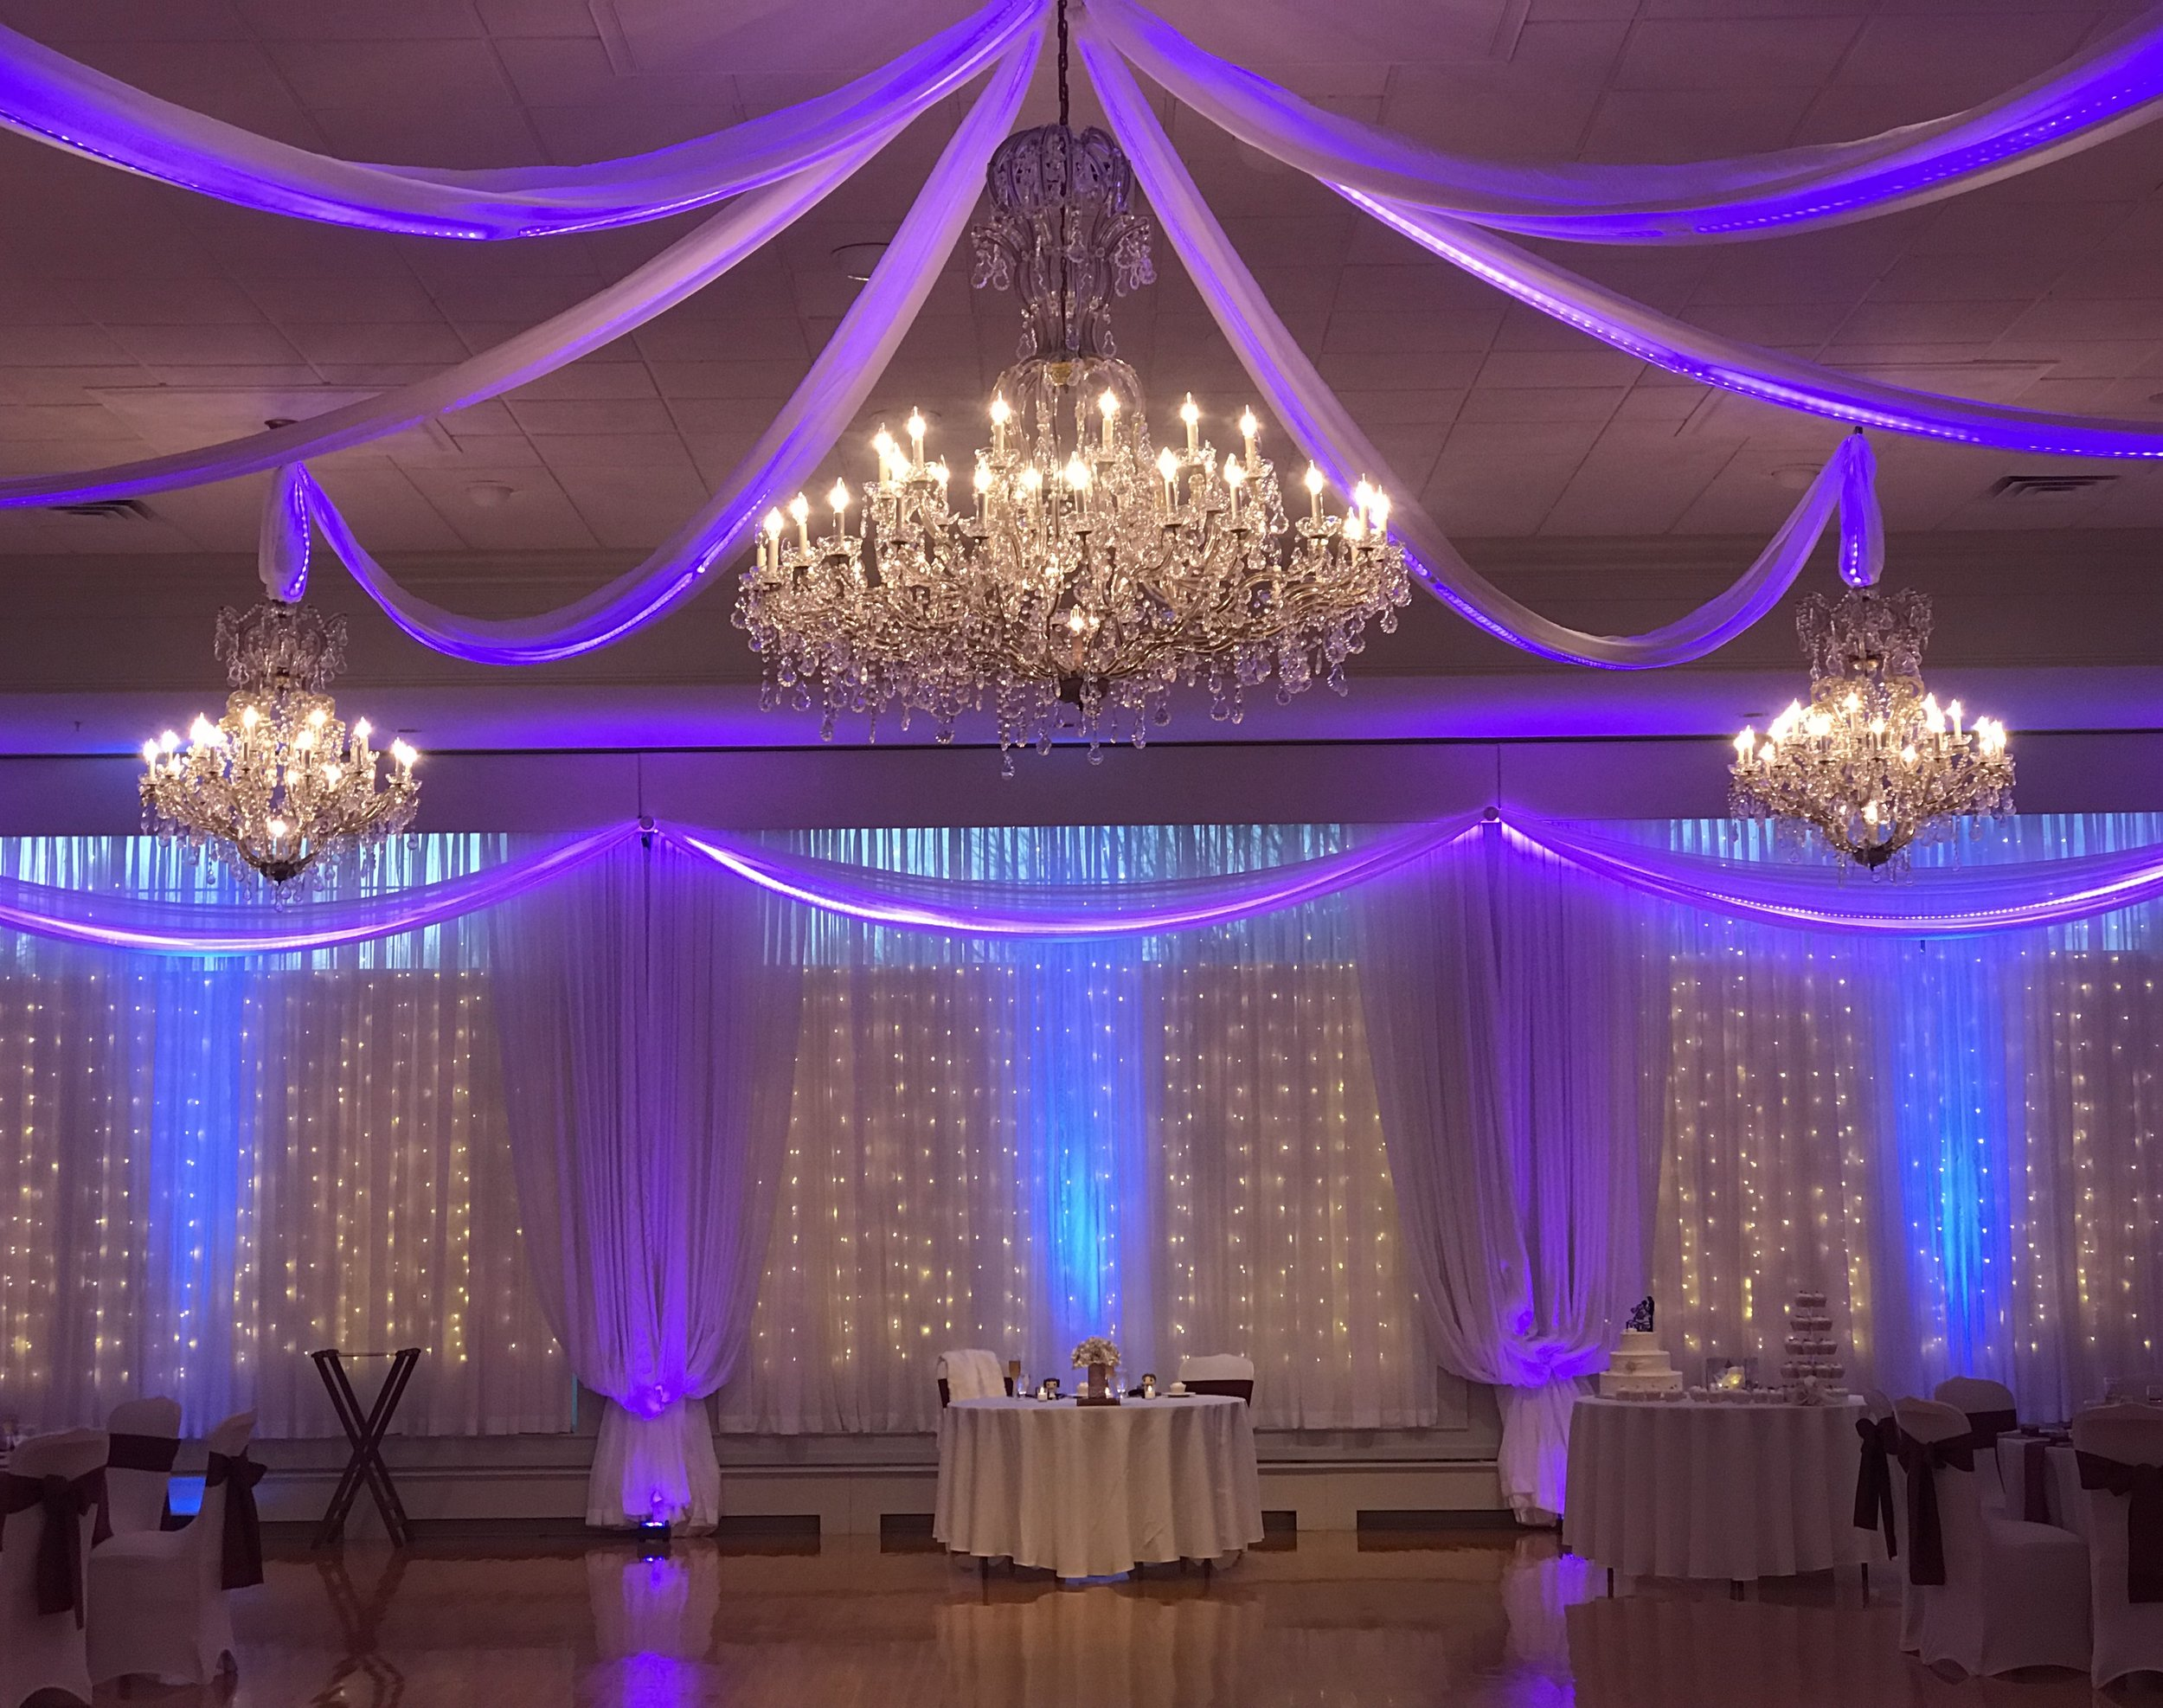 Wireless LED Uplighting by DJ Corey Young